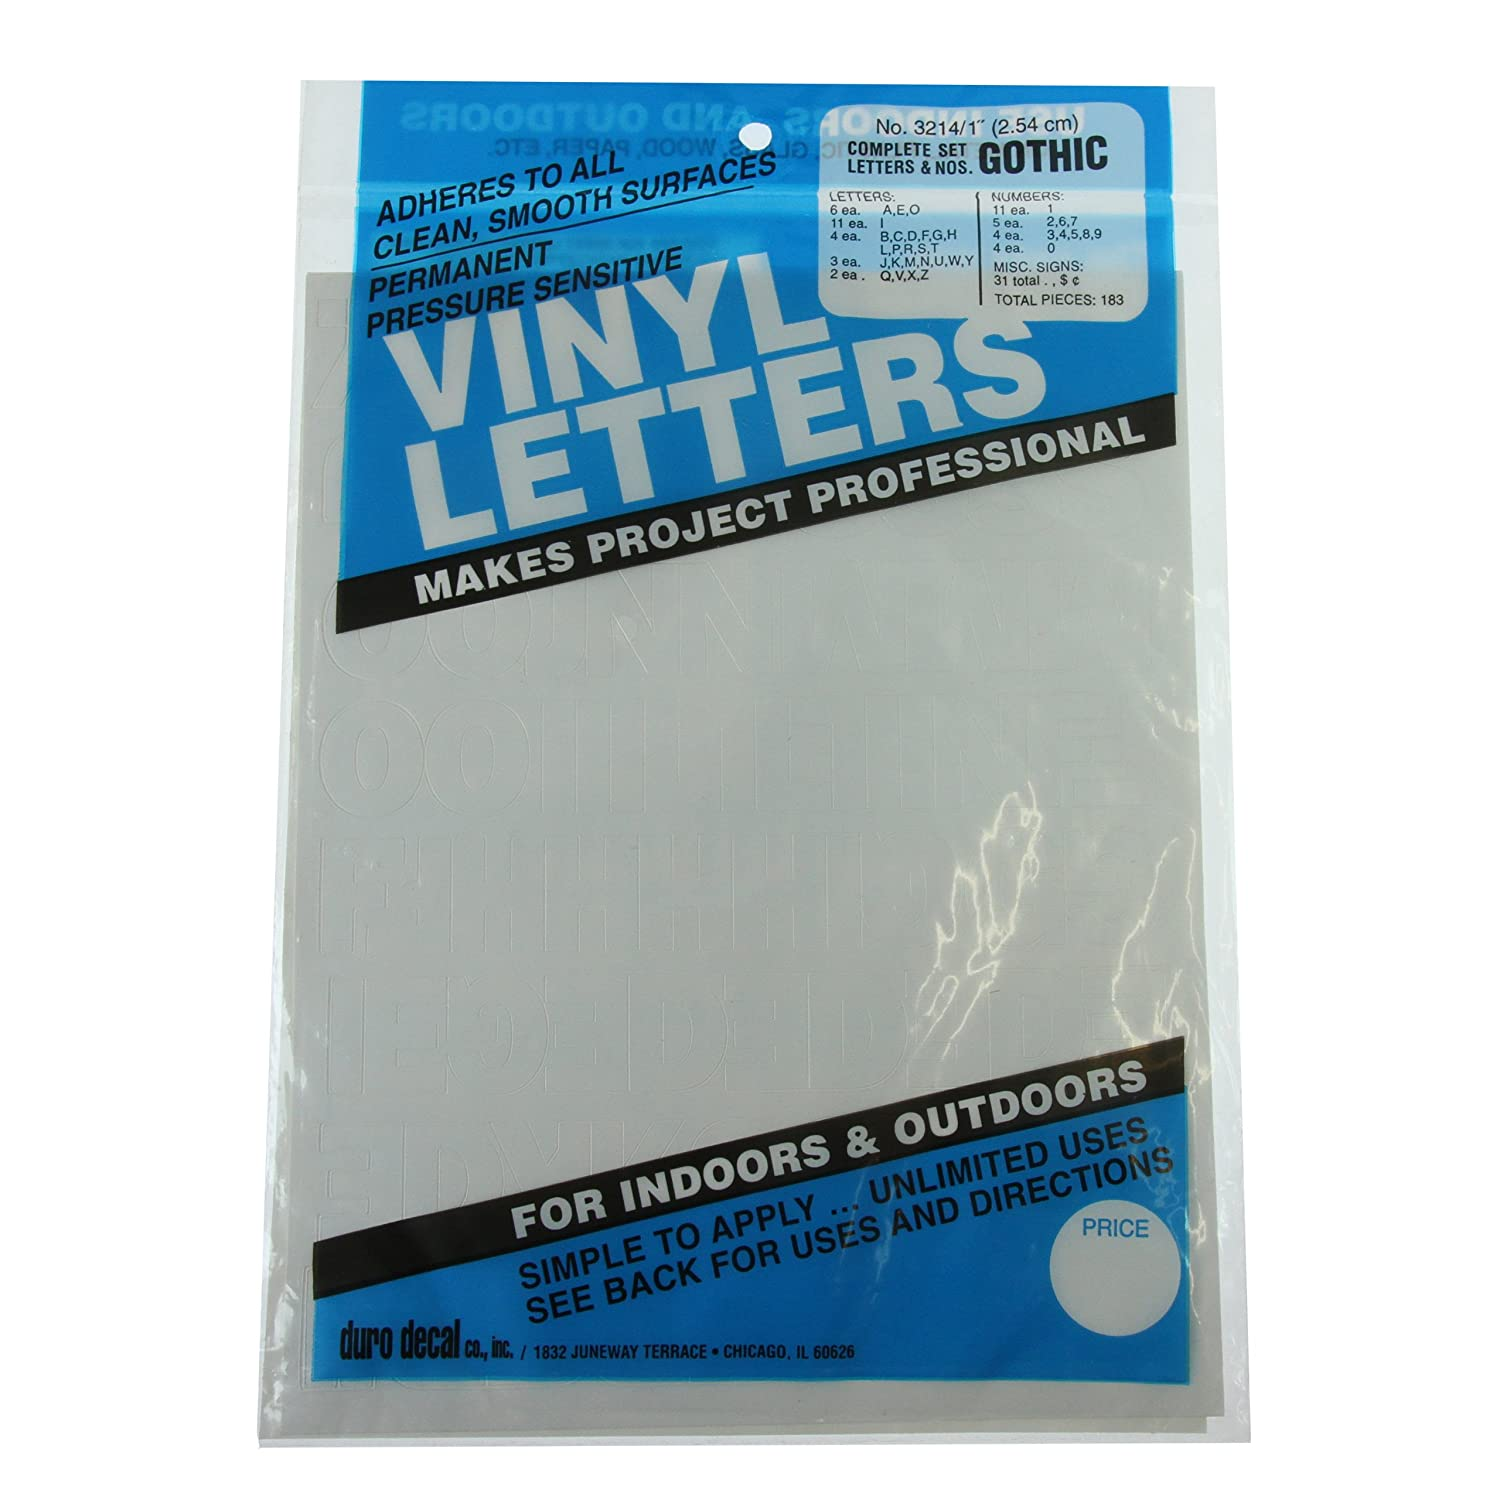 Permanent Adhesive Vinyl Letters & Numbers 1 183/Pkg-White GRAPHIC PRODUCTS D3214-WHITE